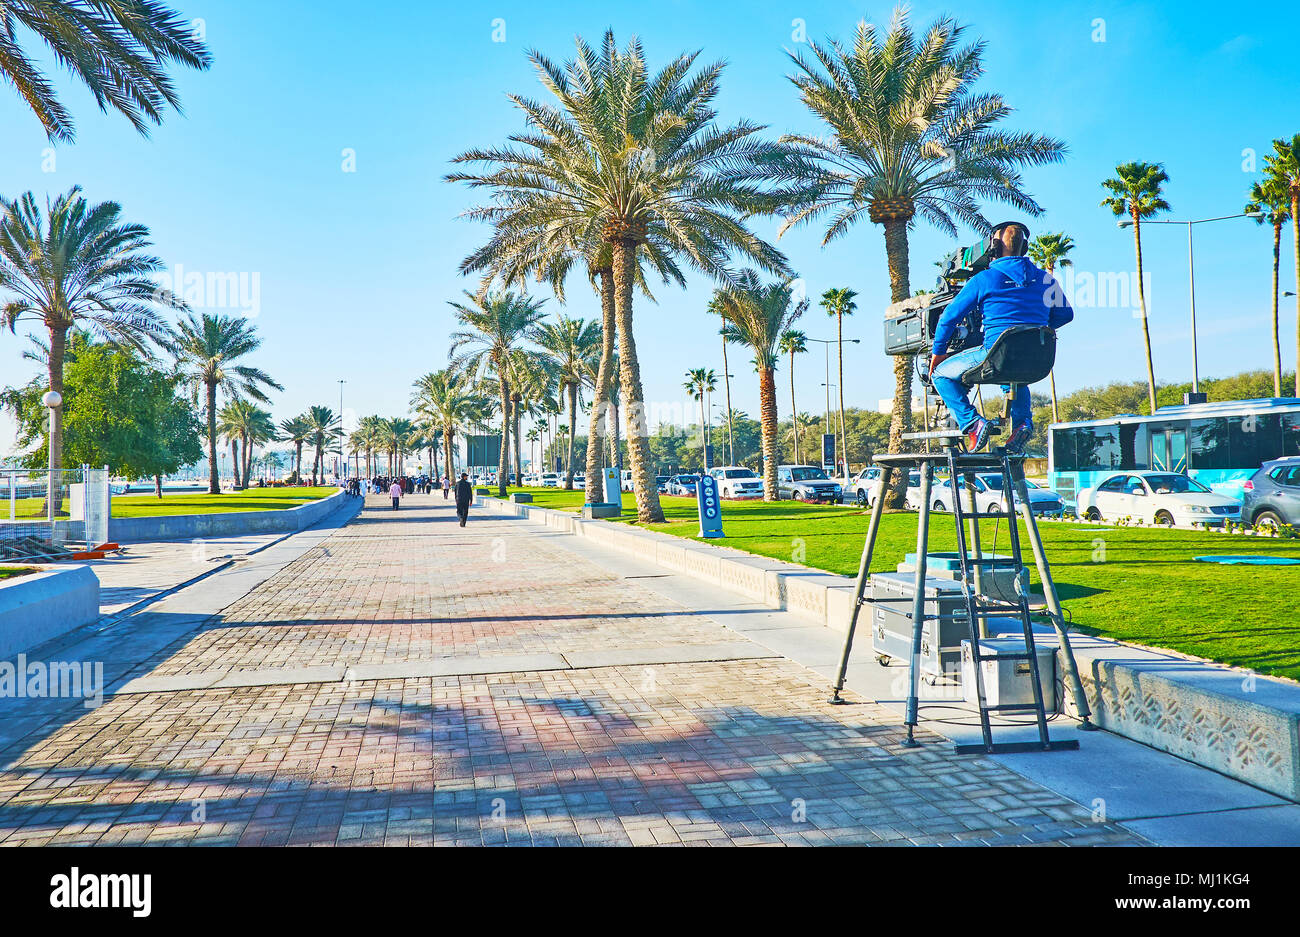 DOHA, QATAR - FEBRUARY 13, 2018: Cameraman conducts live TV broadcast from Corniche promenade in business Al Dafna district during the Day of Sport, o - Stock Image